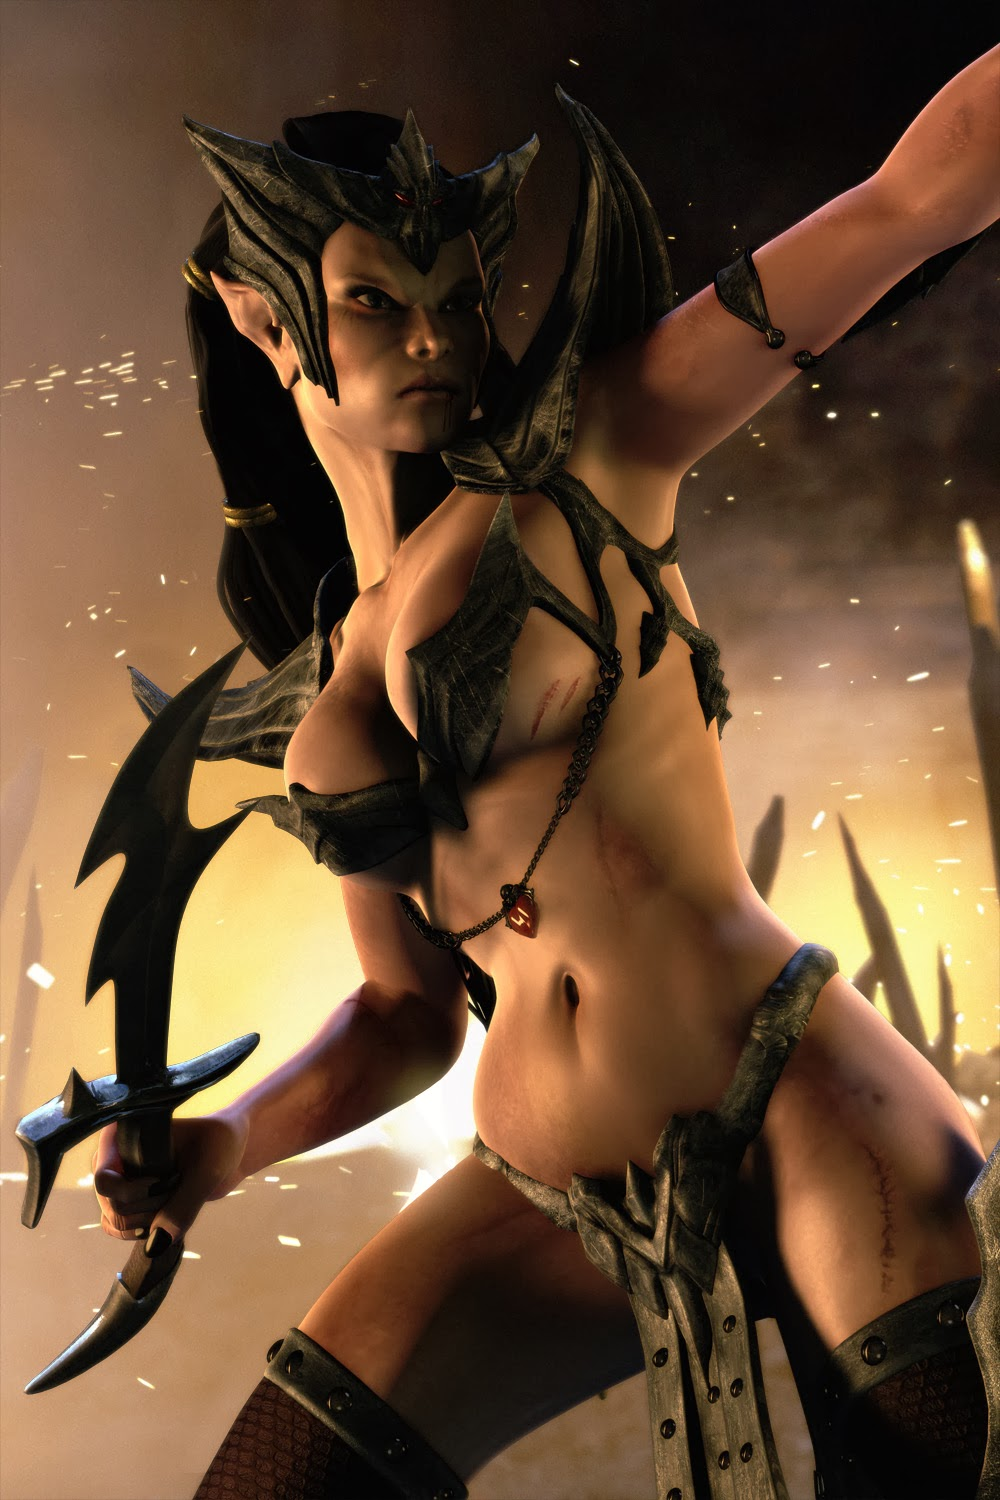 Gallery the dark elf lover 3d pic  pron whore